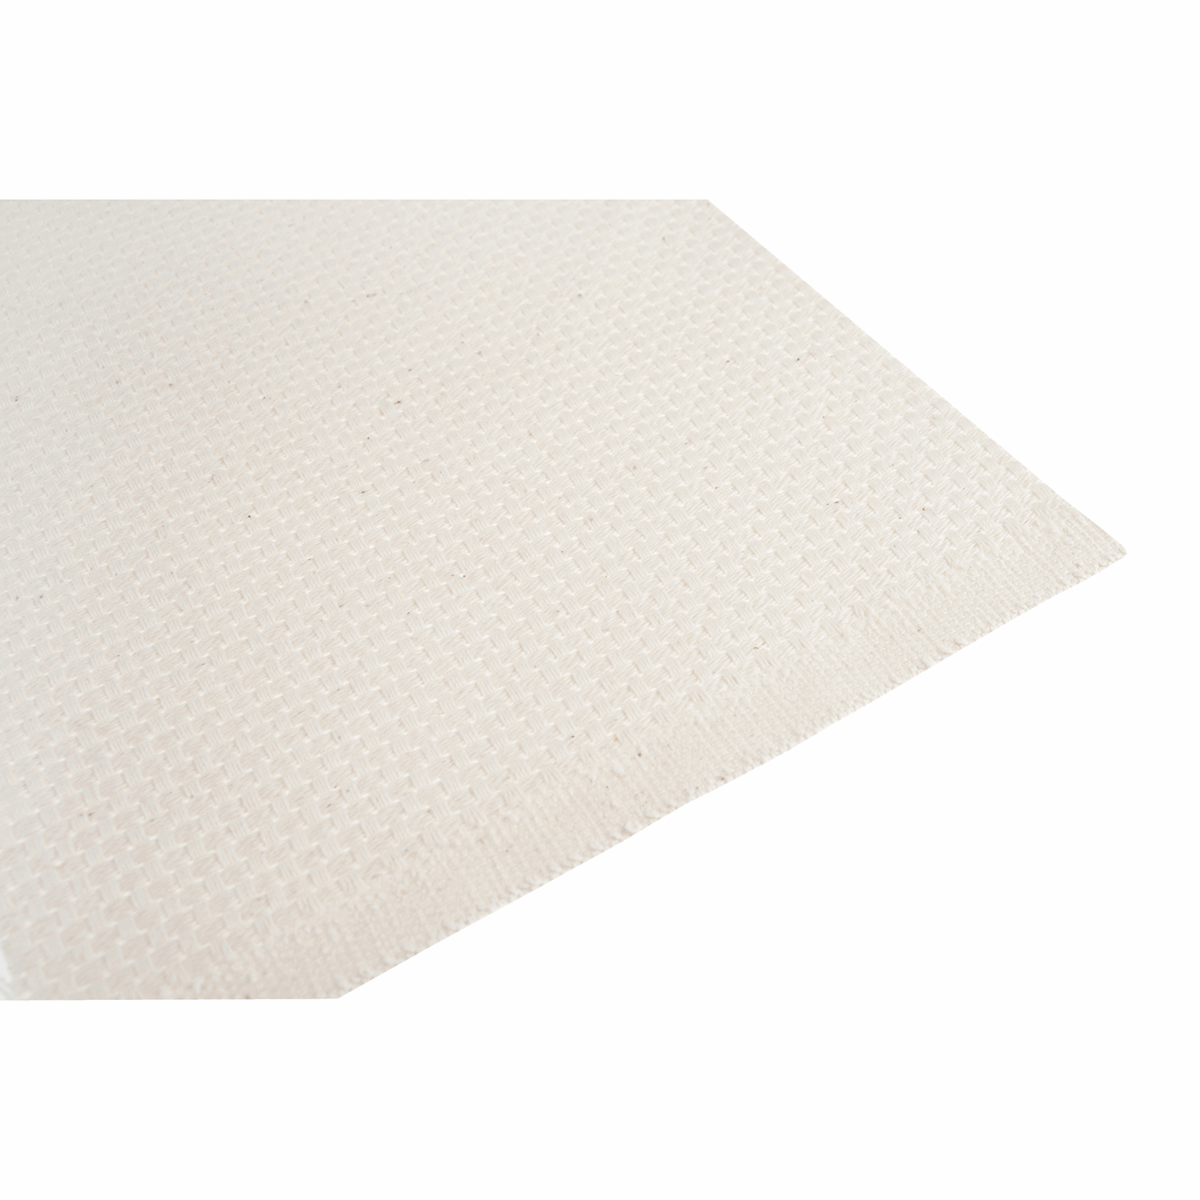 Picture of Needlecraft Fabric: Monk's Cloth: 7 Count: 5m x 140cm: Natural